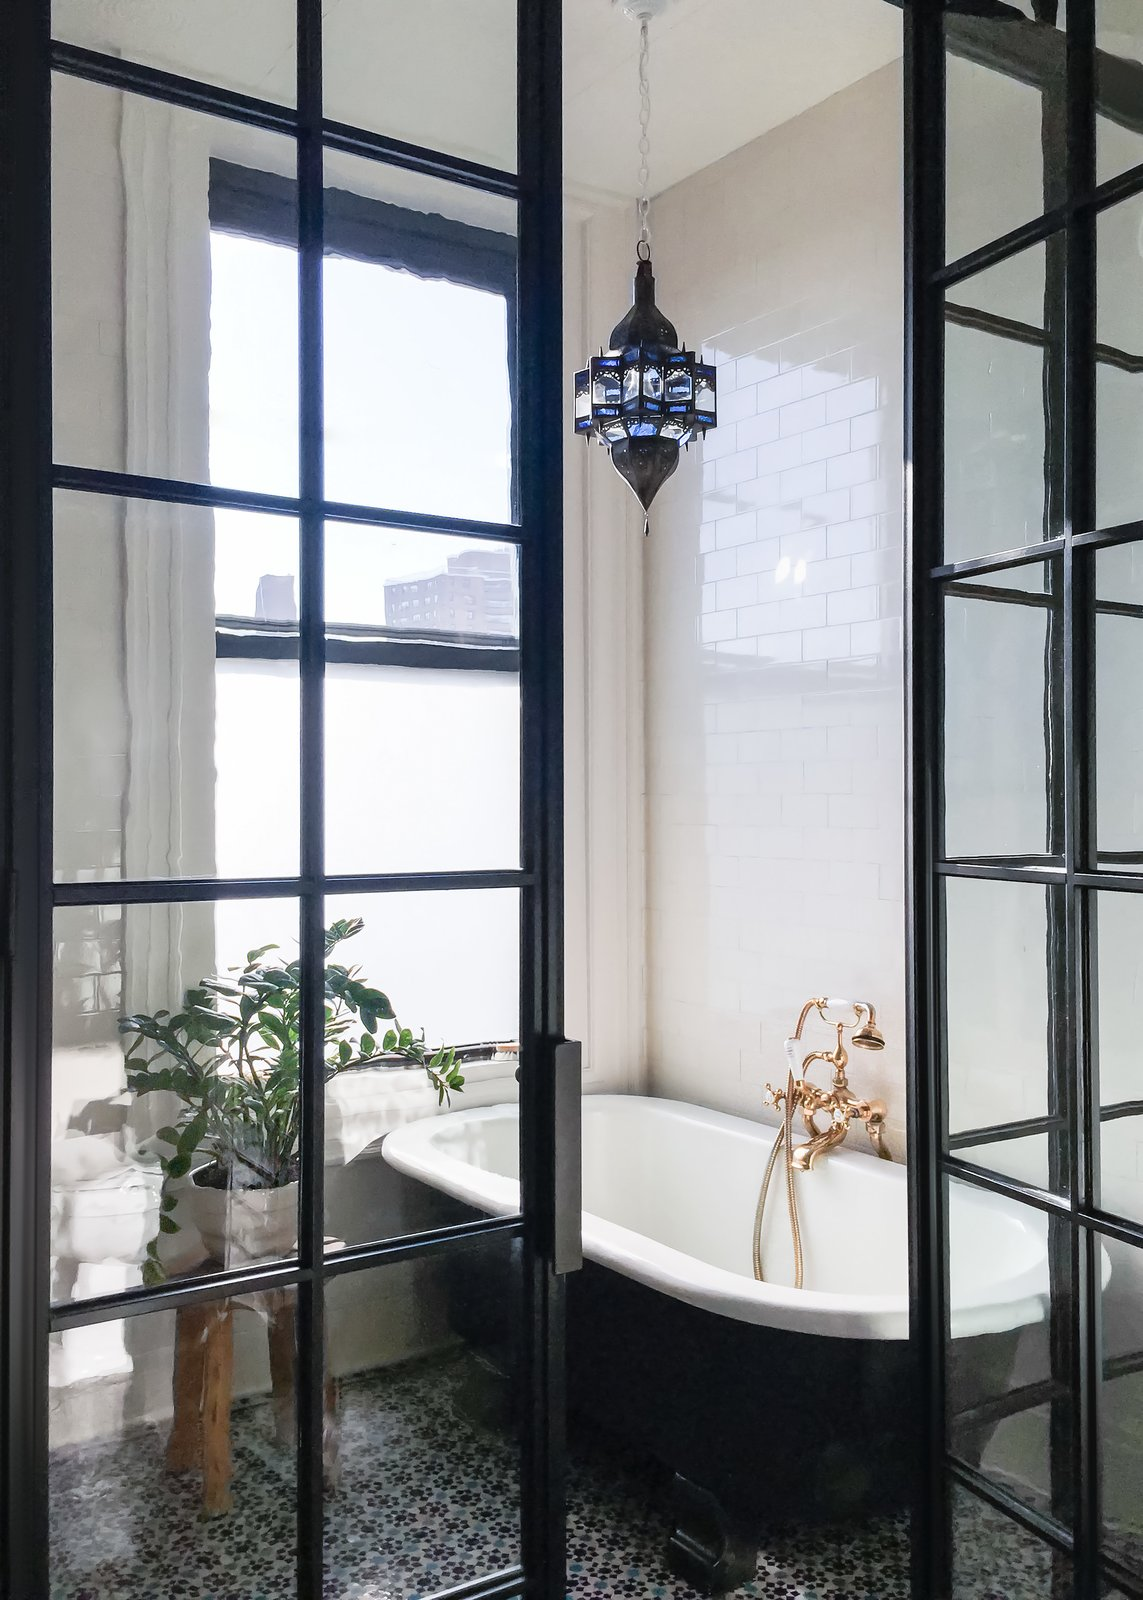 Bath Room, Pendant Lighting, Freestanding Tub, Subway Tile Wall, and Ceramic Tile Floor  Photo 19 of 22 in A 19th-Century Schoolhouse in Brooklyn Becomes a Classy Apartment